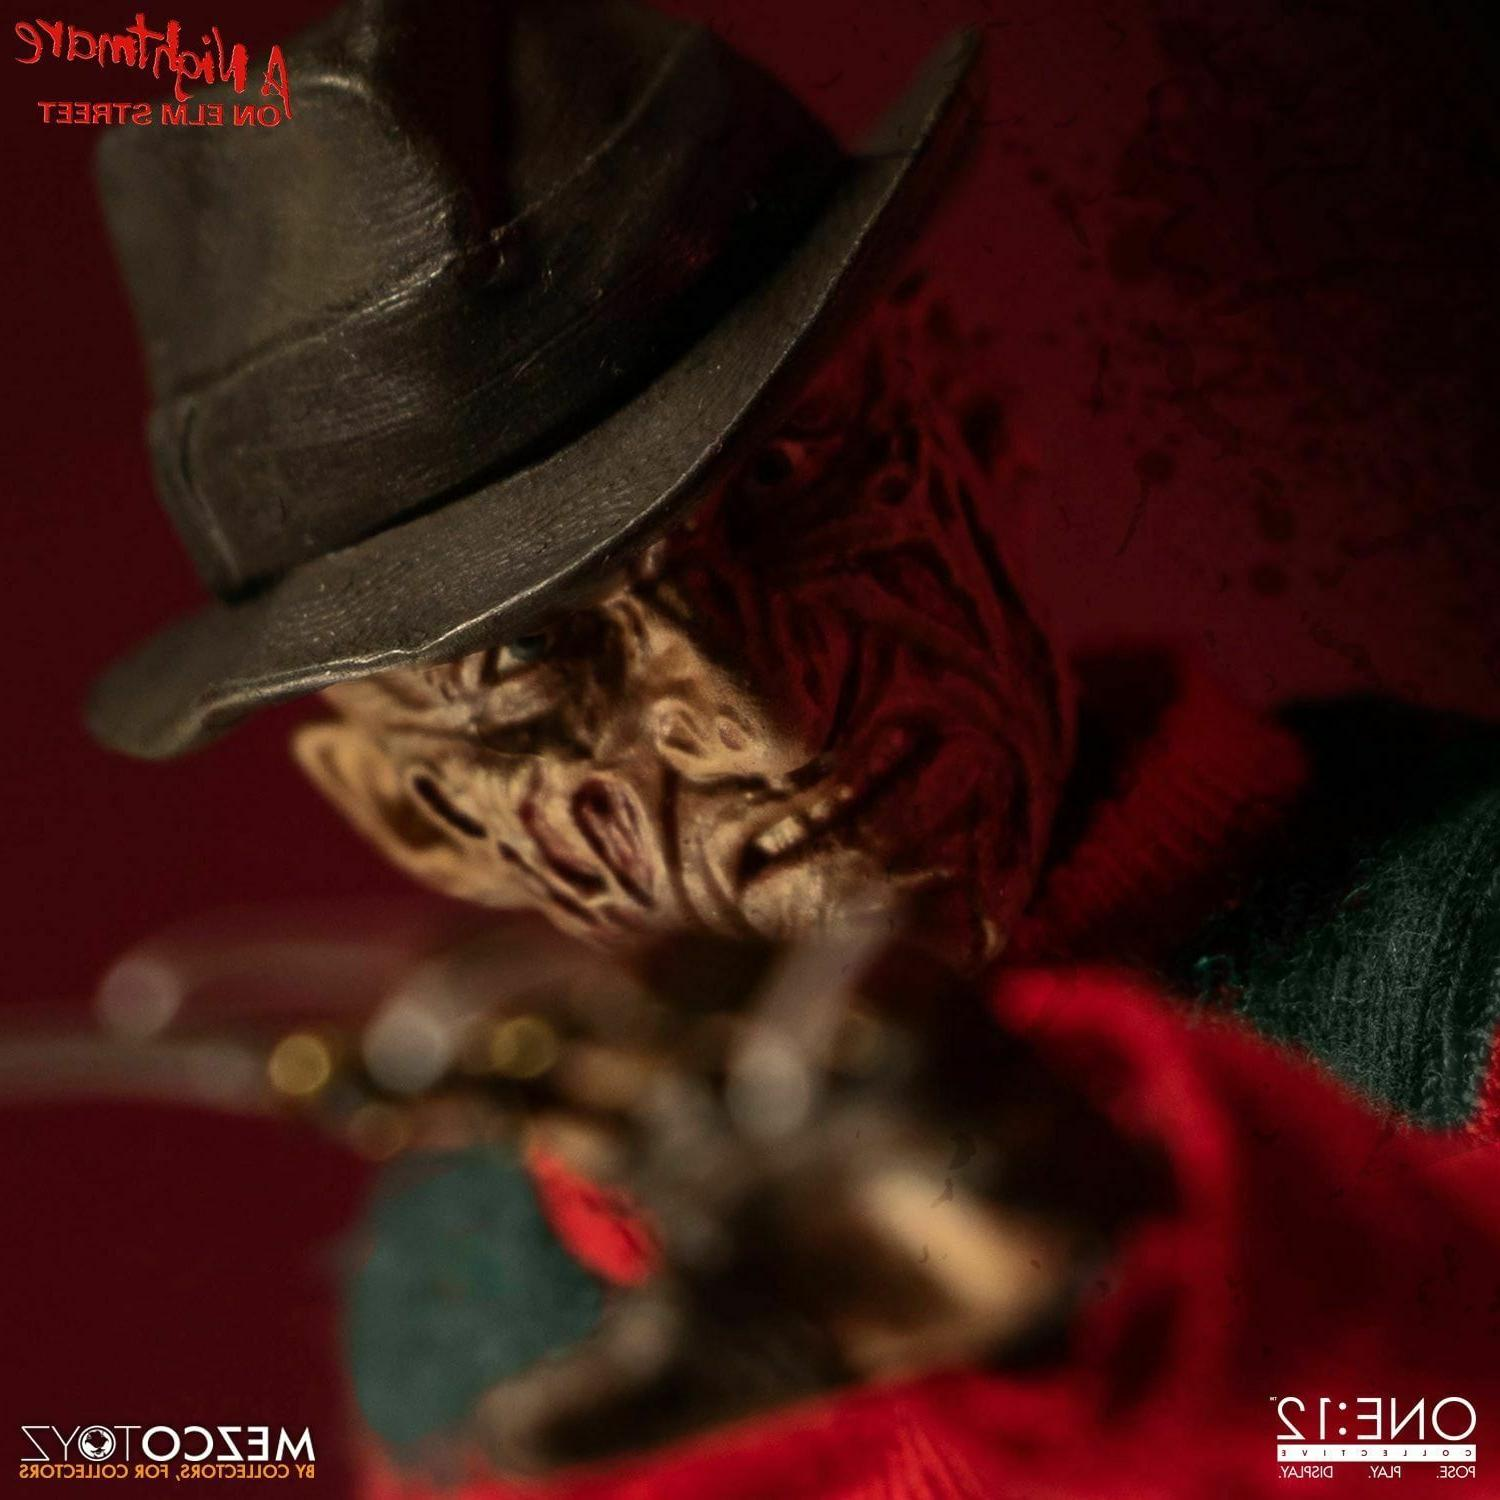 Mezco Collective Nightmare on Elm Krueger Action Figure